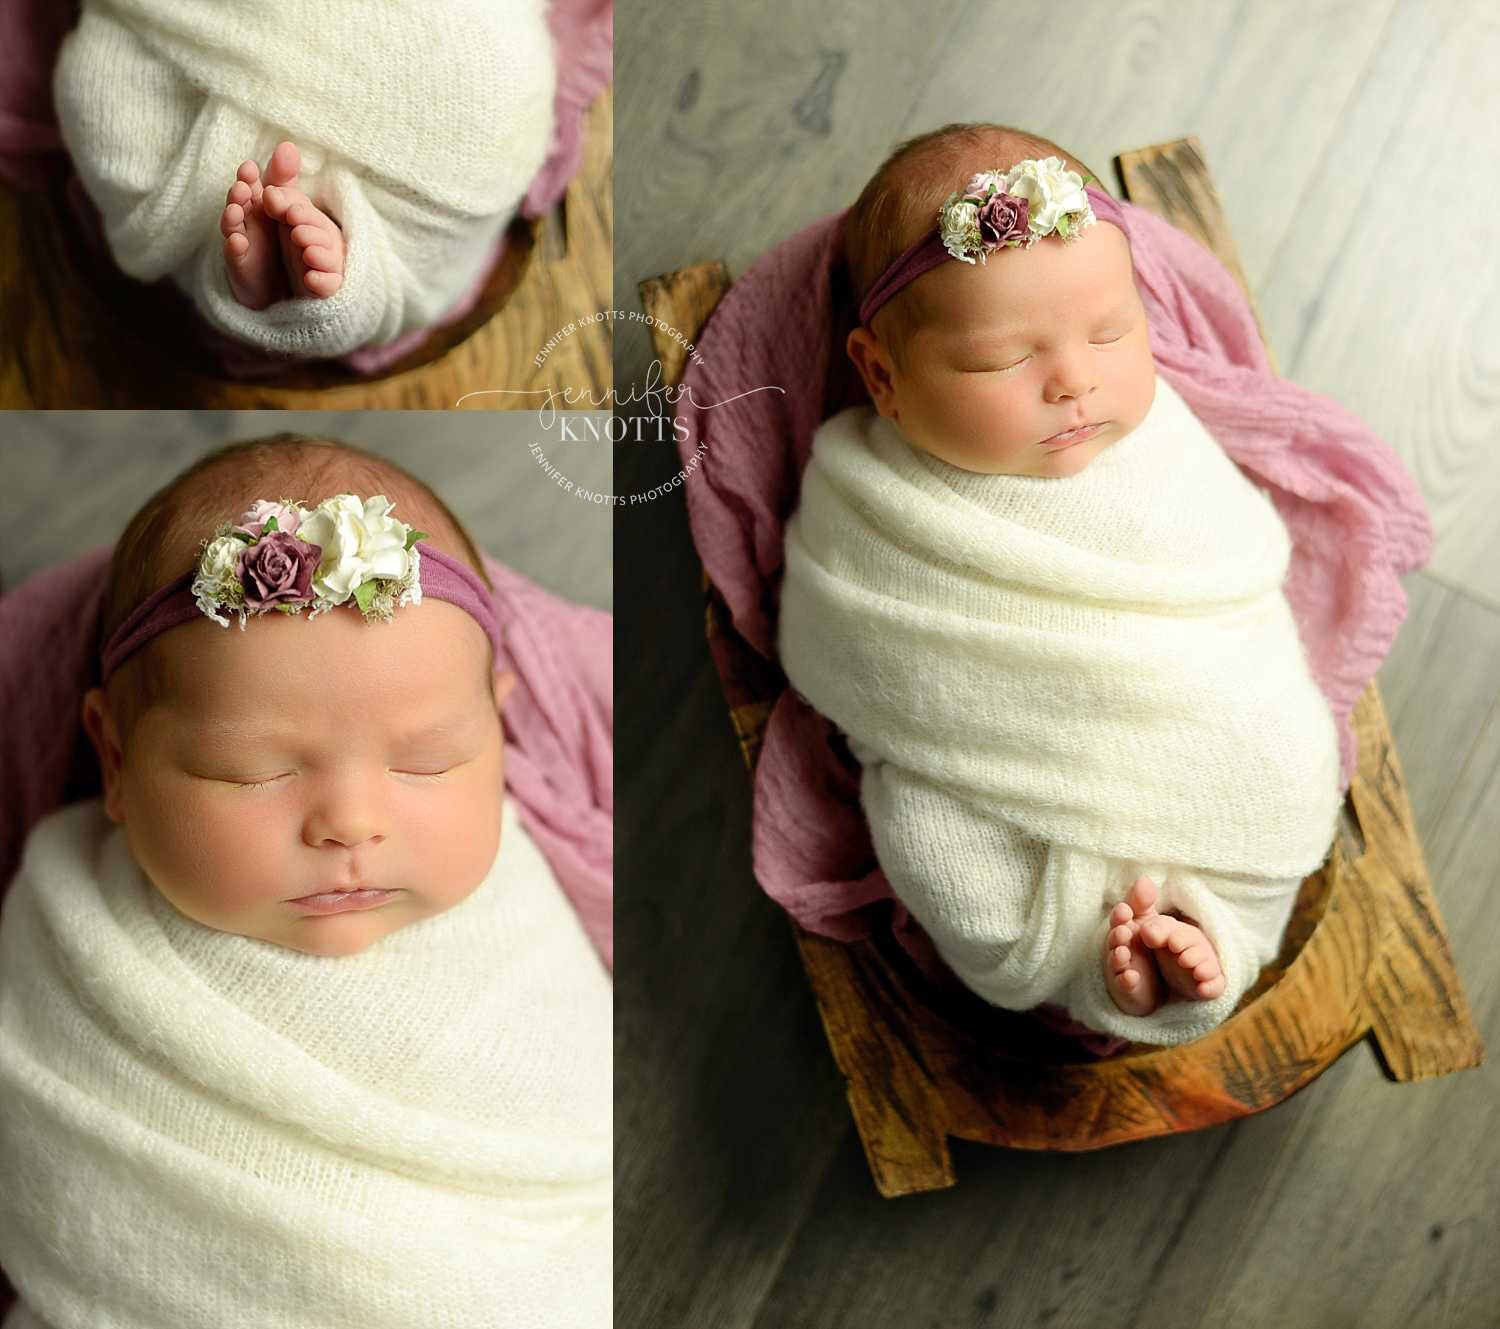 baby girl wrapped with toes peeking out sleeps in wooden bowl